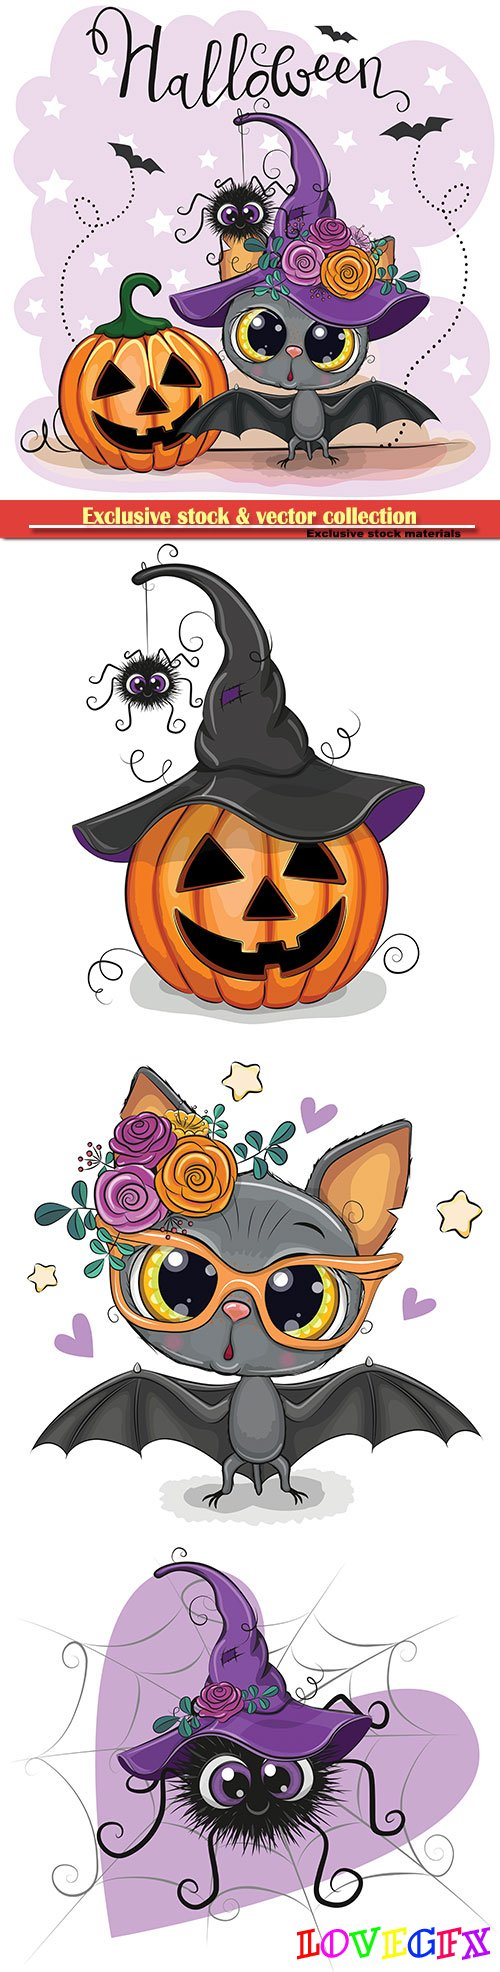 Halloween illustrations and design vector elements